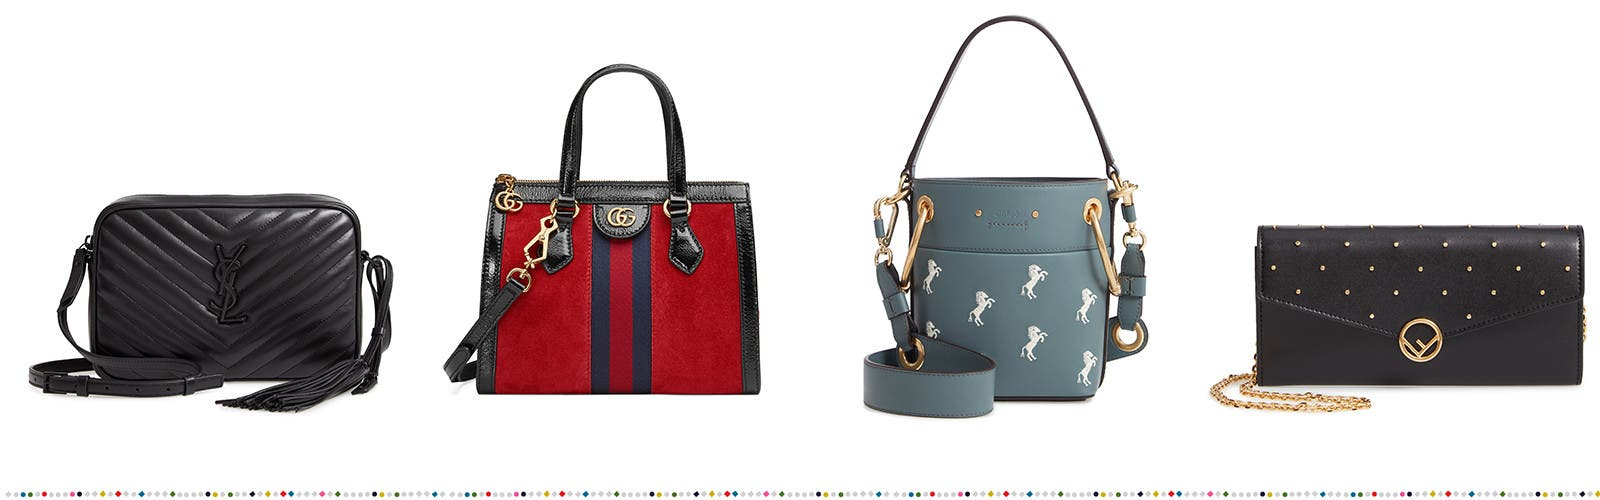 Designer Crossbos Totes Satchelore Handbags And Wallets